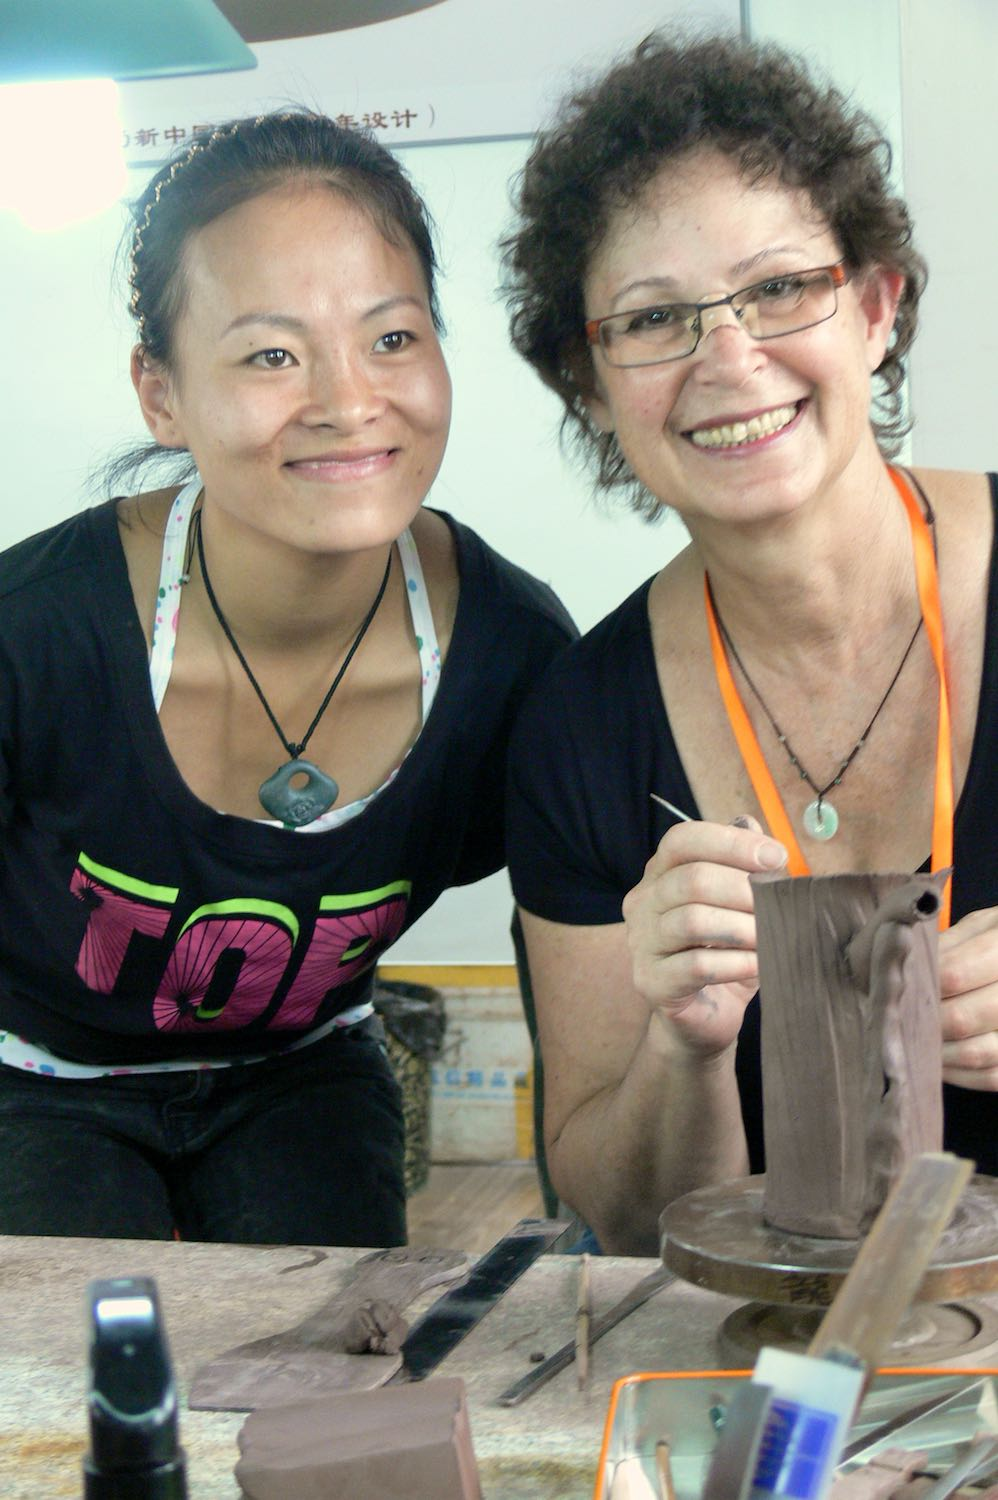 2012 - trying out Purple Clay with students